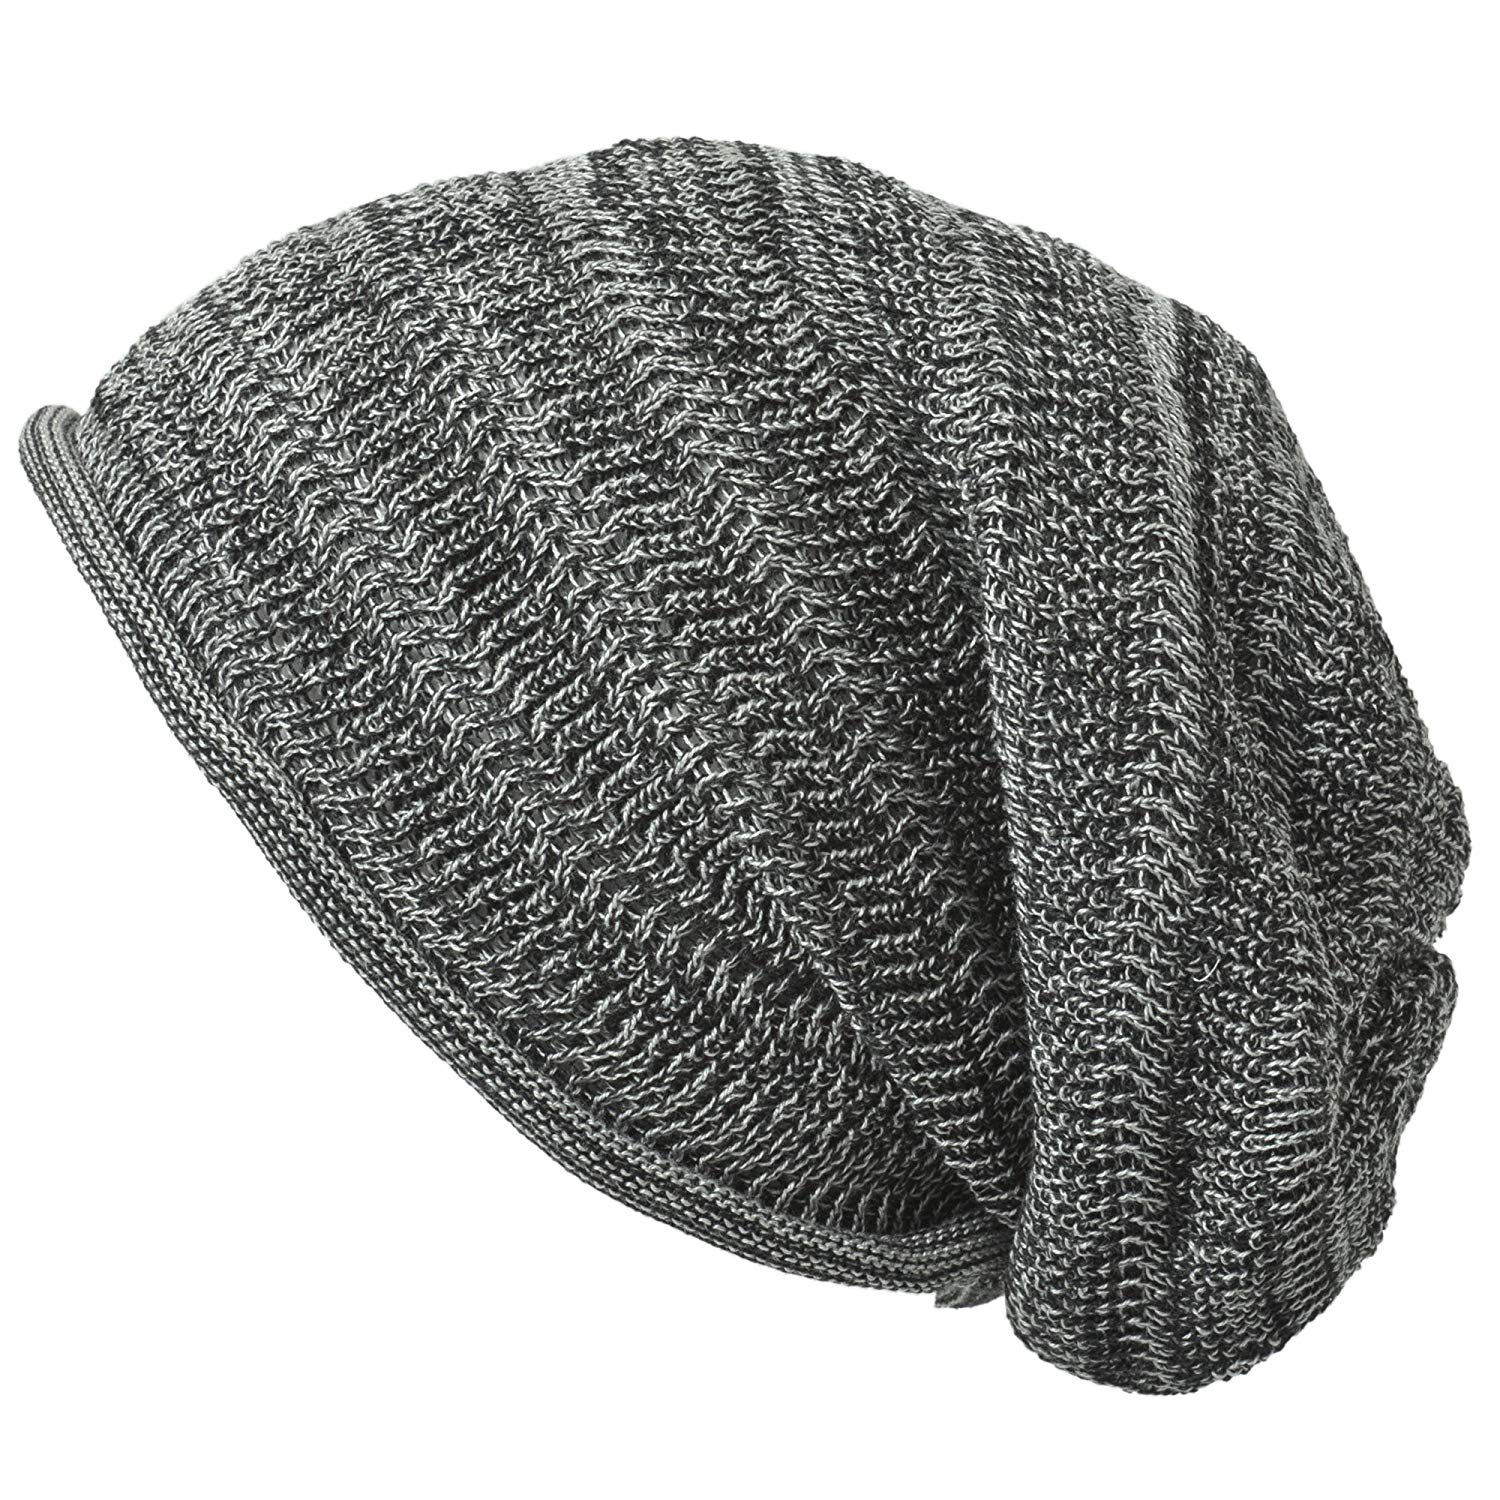 180e3c42995 Buy CasualBox Mens Thermal Stretch Sports Made in Japan Tight Beanie ...